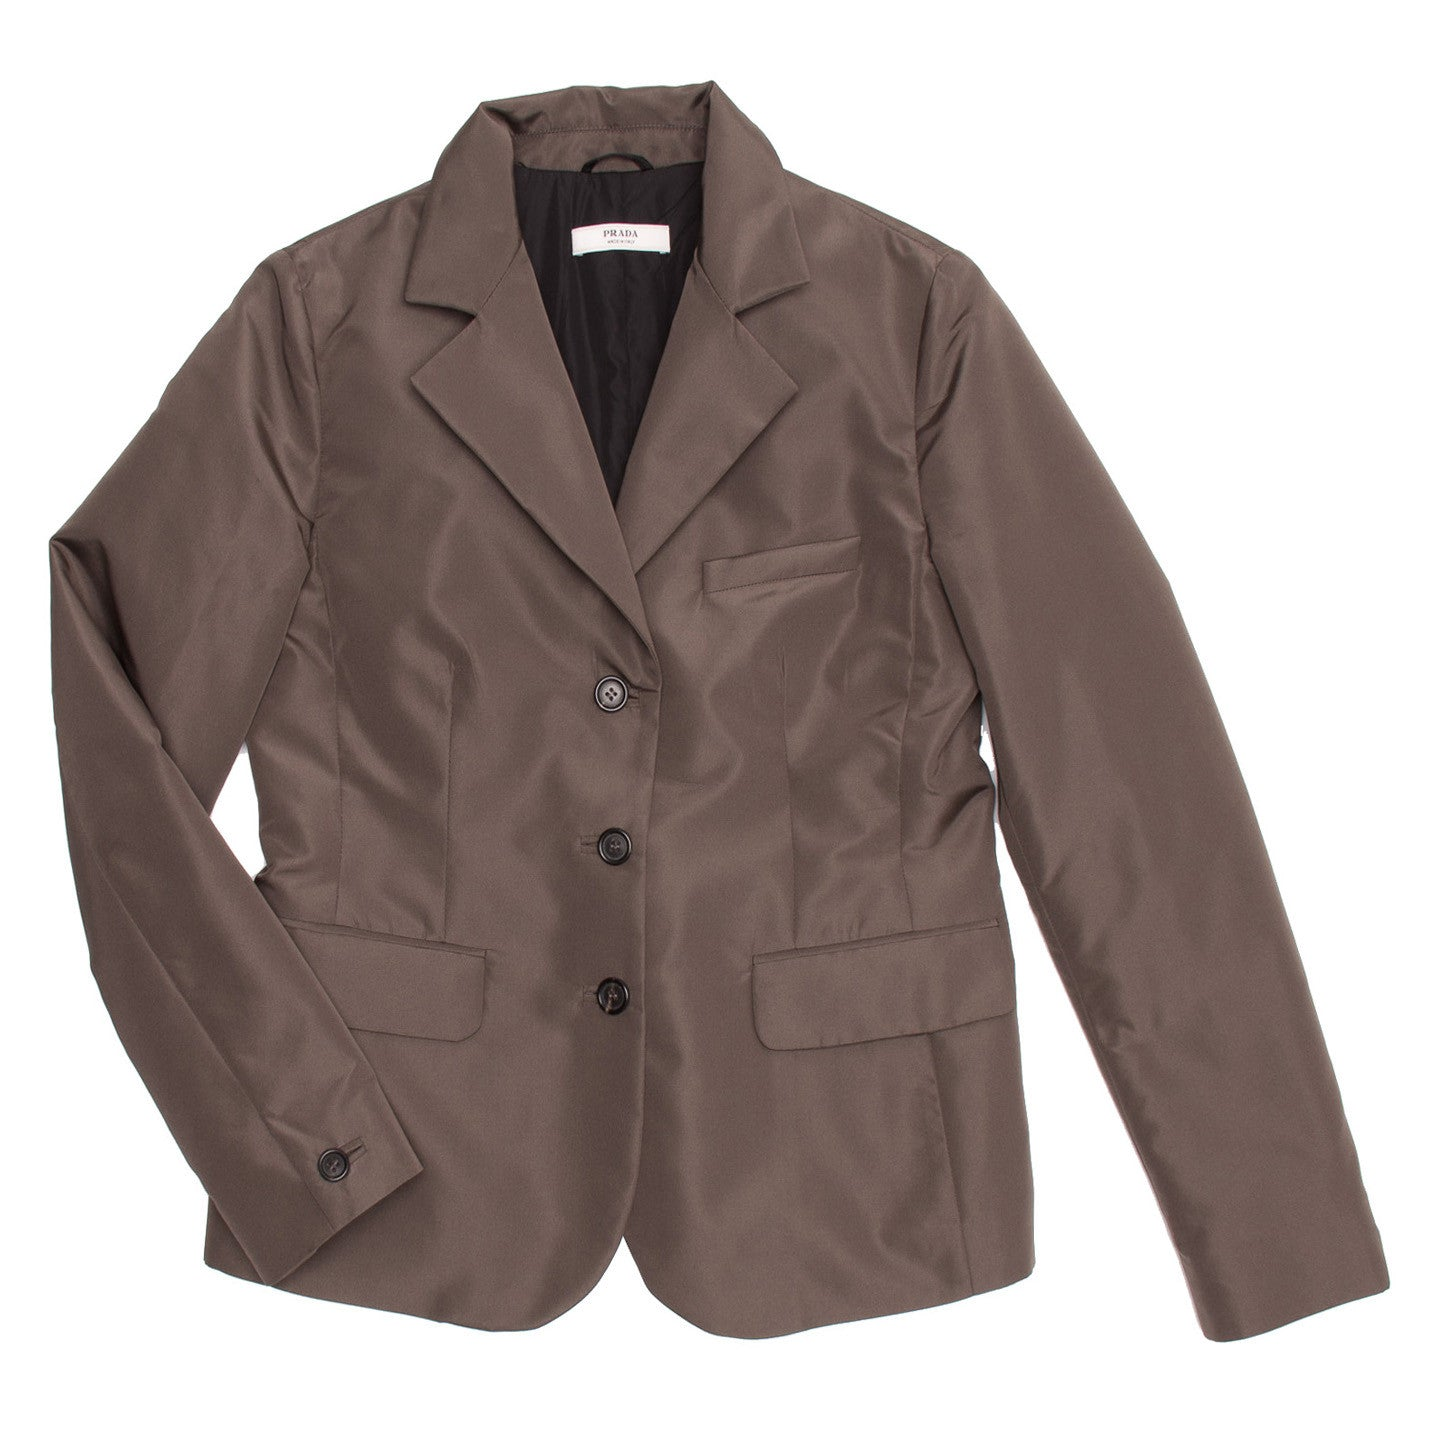 Find an authentic preowned Prada Olive Khaki Poly Satin Blazer size 46 (Italian) at BunnyJack, where up to 50% of each sale price is donated to charity.